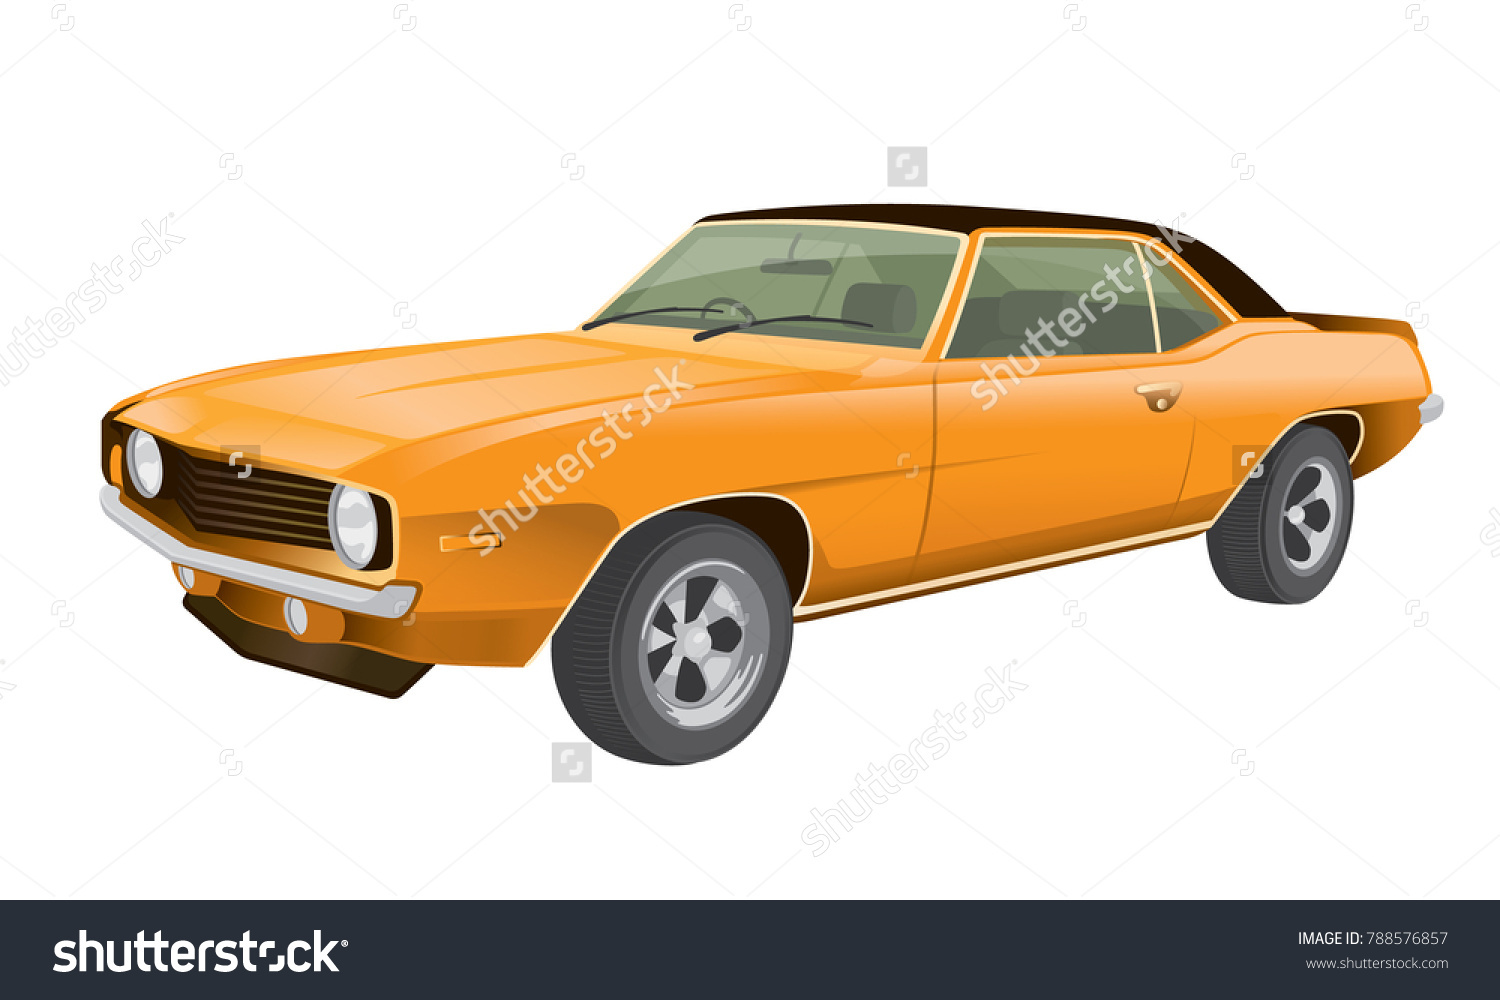 Classic American Muscle Car Vector Illustration Stock Vector ...